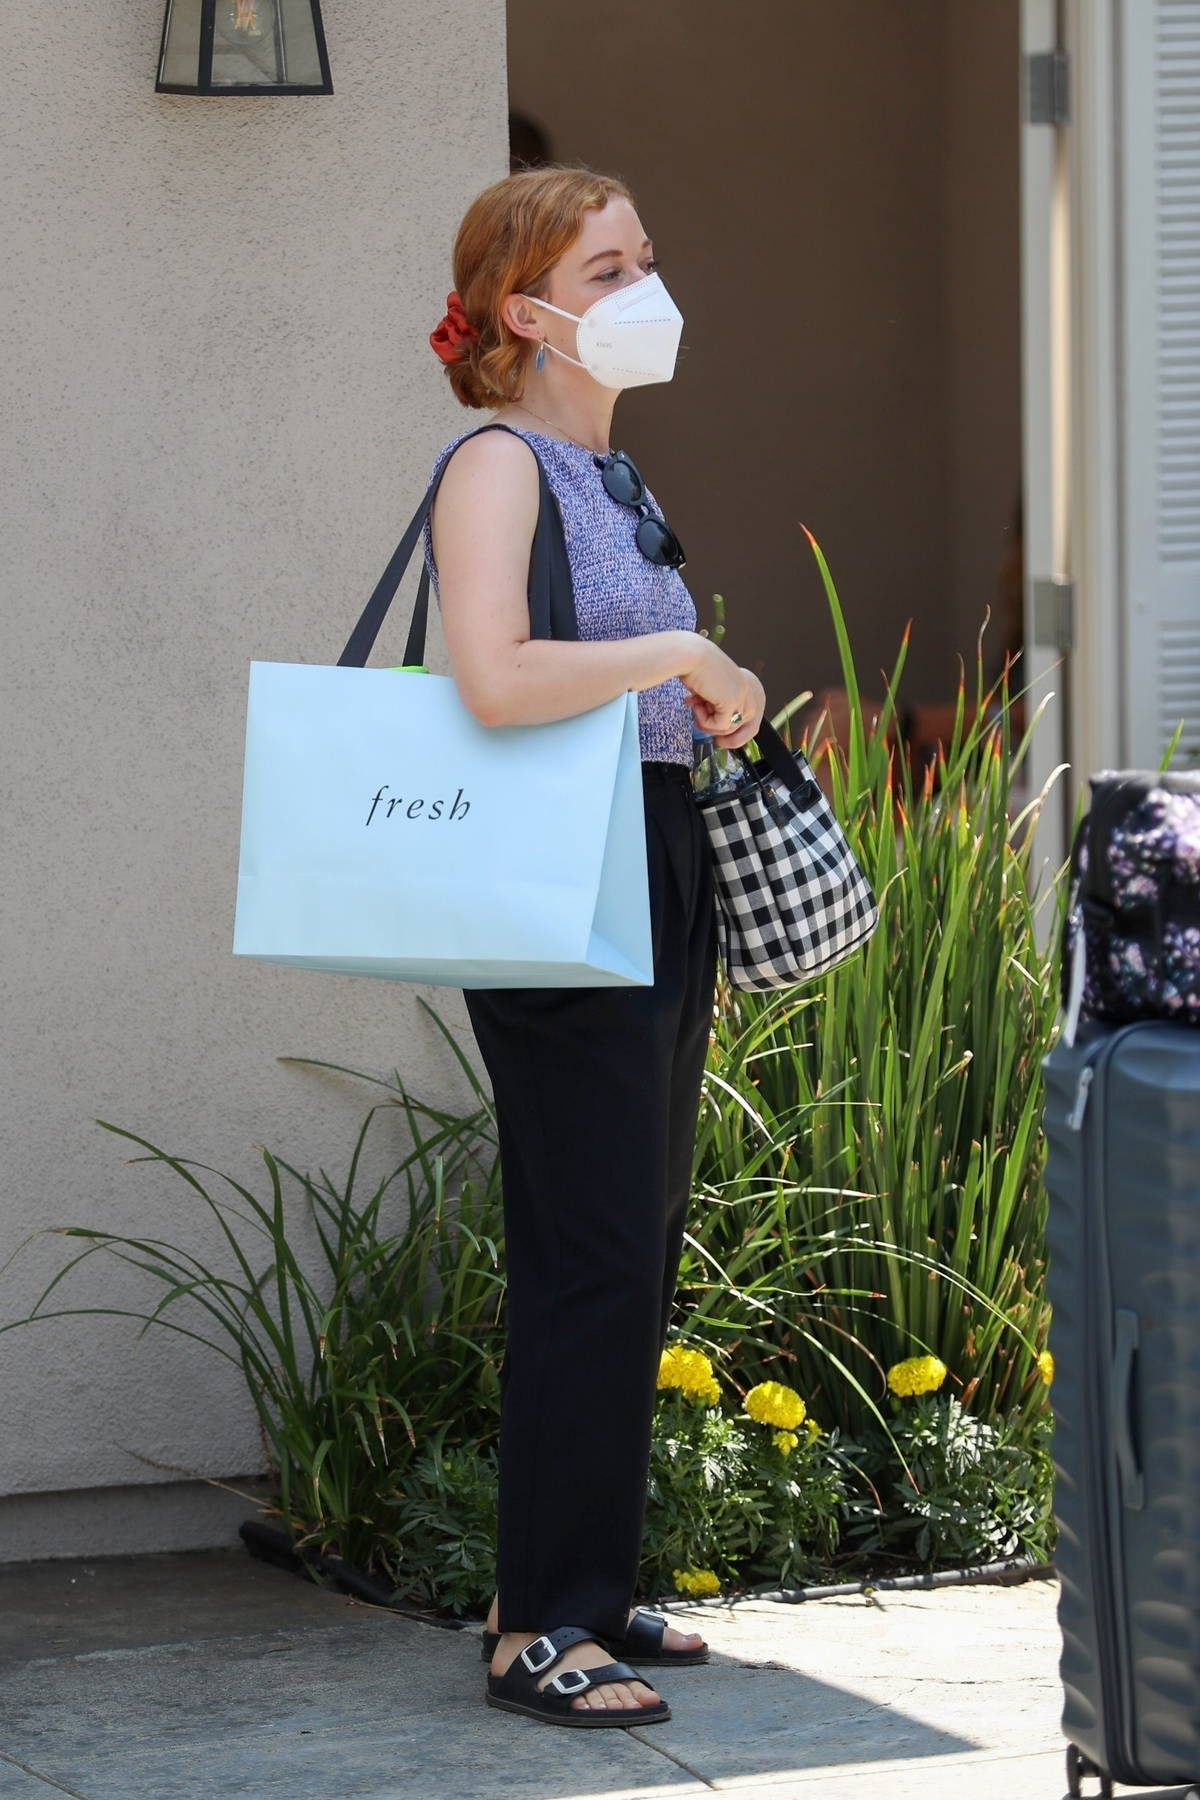 Jane Levy attends the Day Of Indulgence event in Brentwood, California